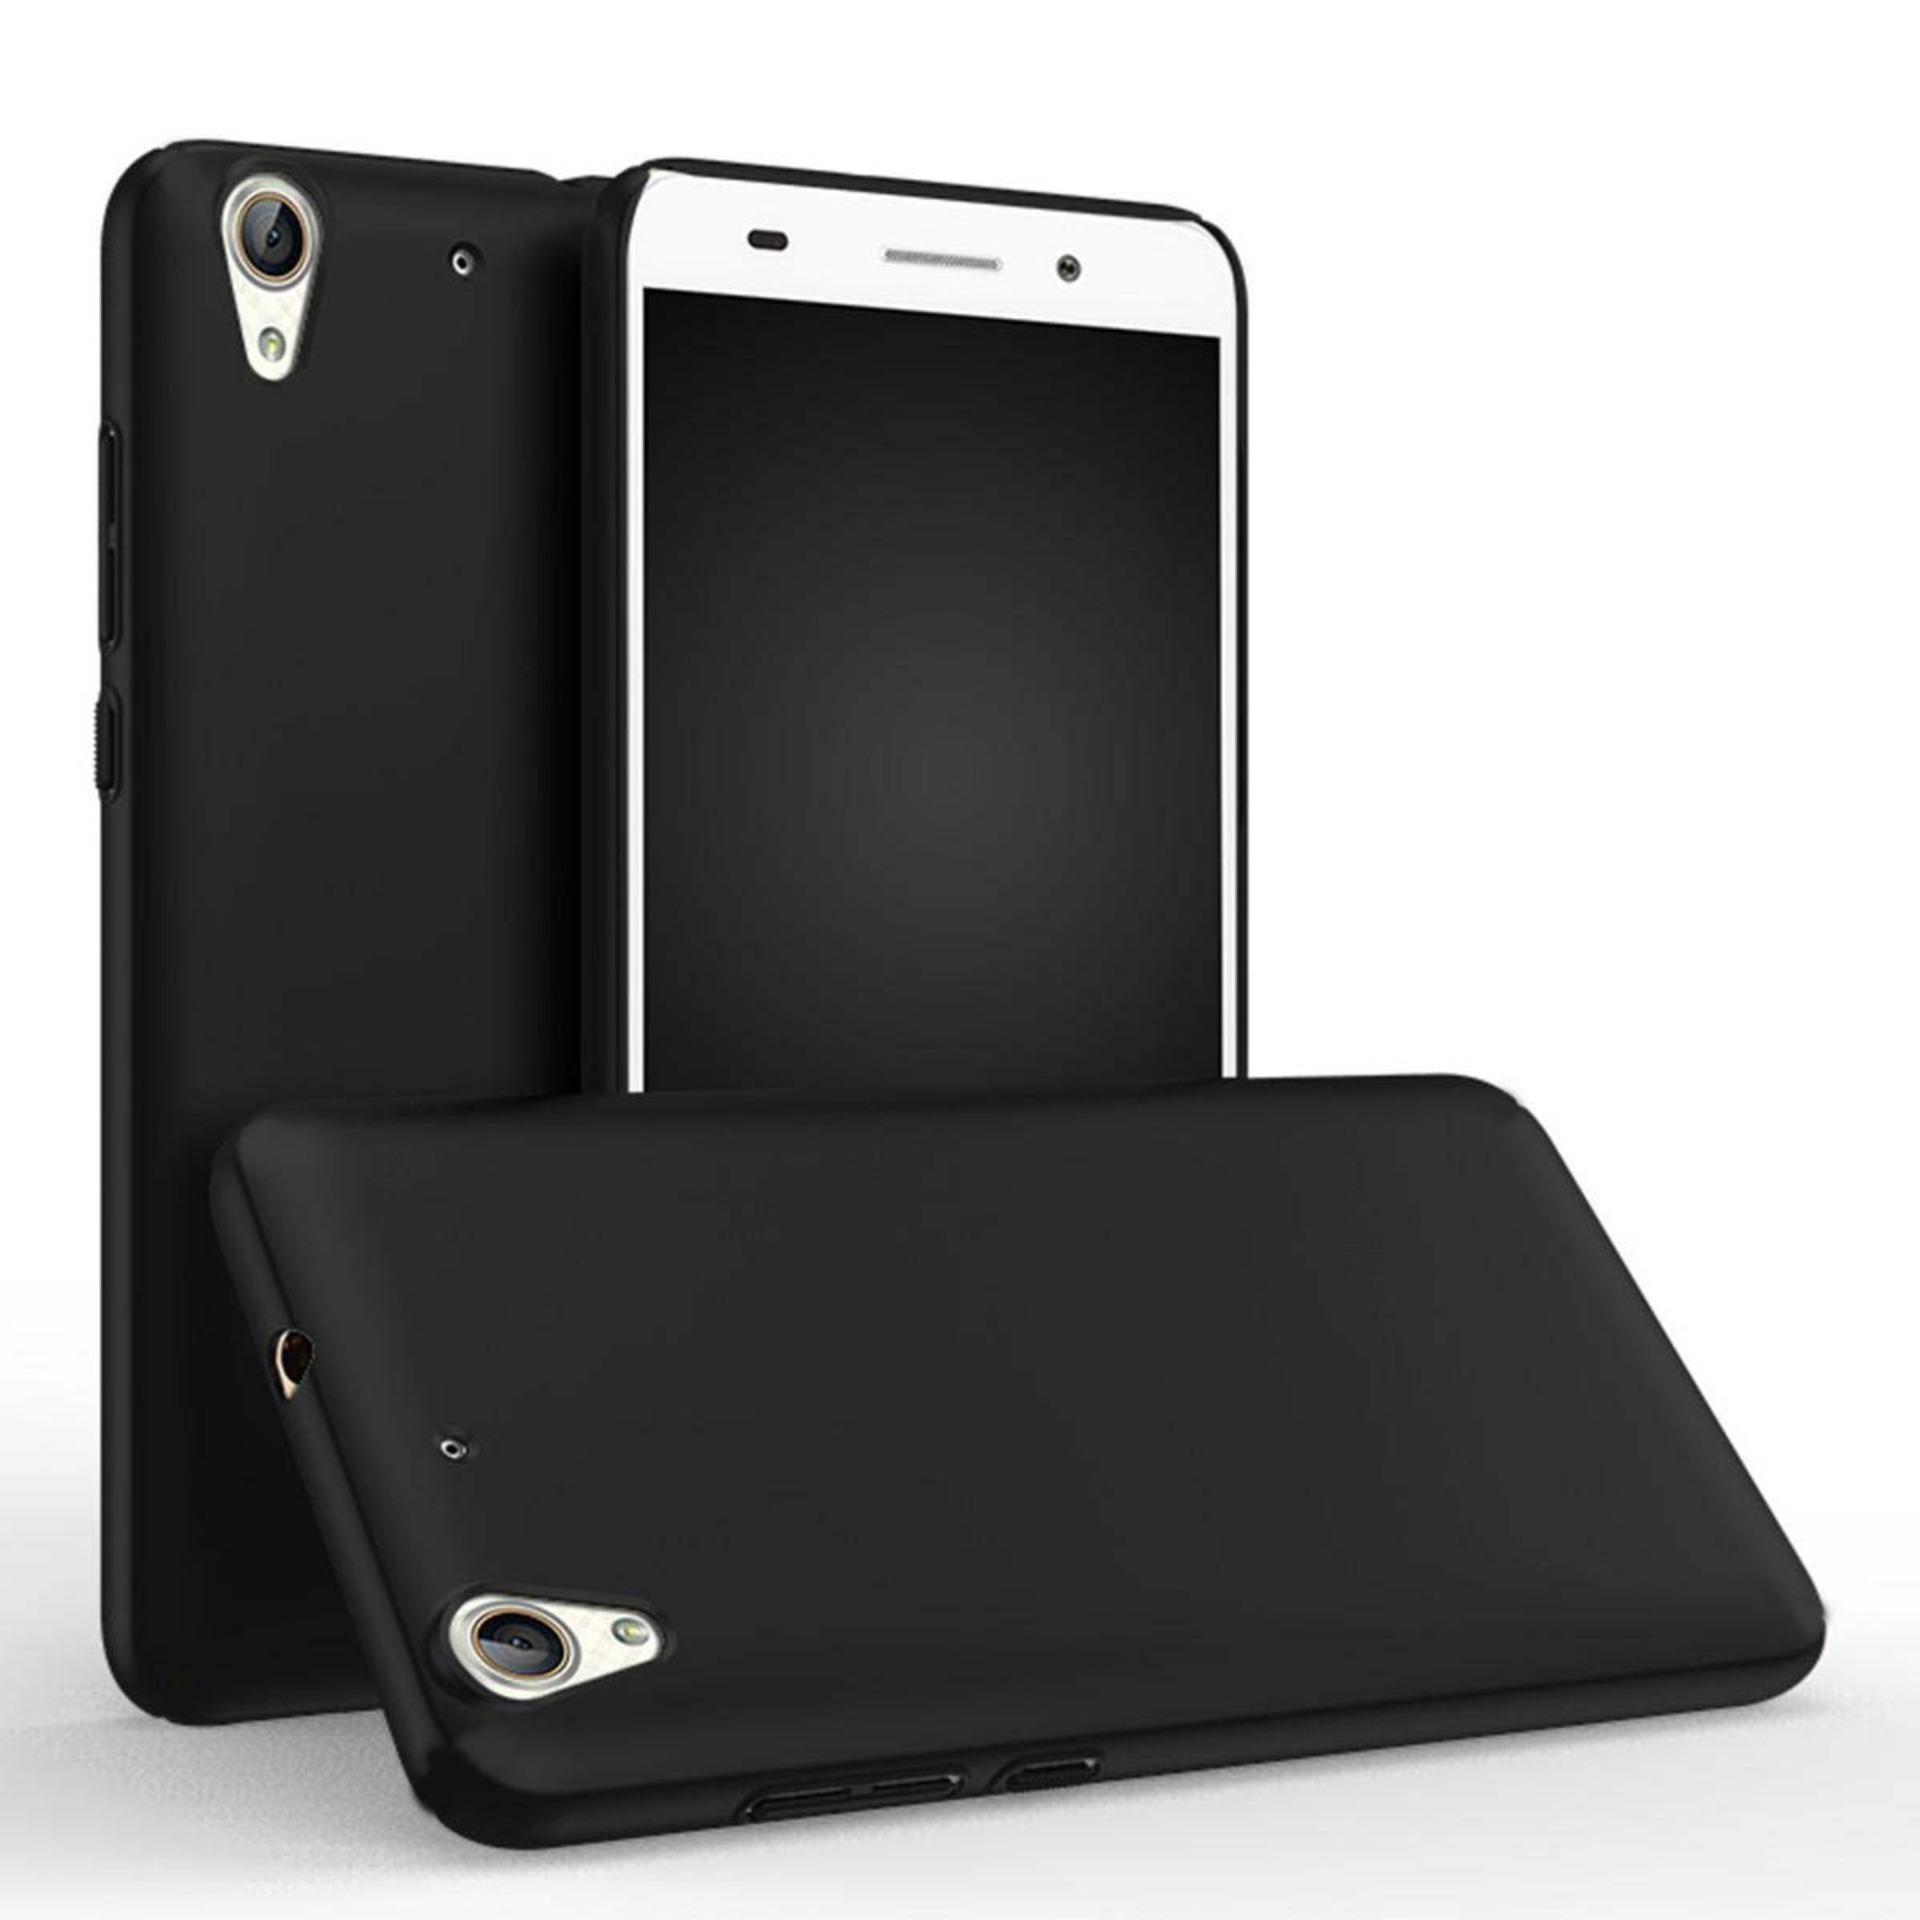 DarkNight for Huawei Ascend Y6ii / Y6 2 / Y6 (2016) | Slim Case Black Matte Softcase Premium (Anti Minyak/Anti Sidik Jari) - Hitam Doff